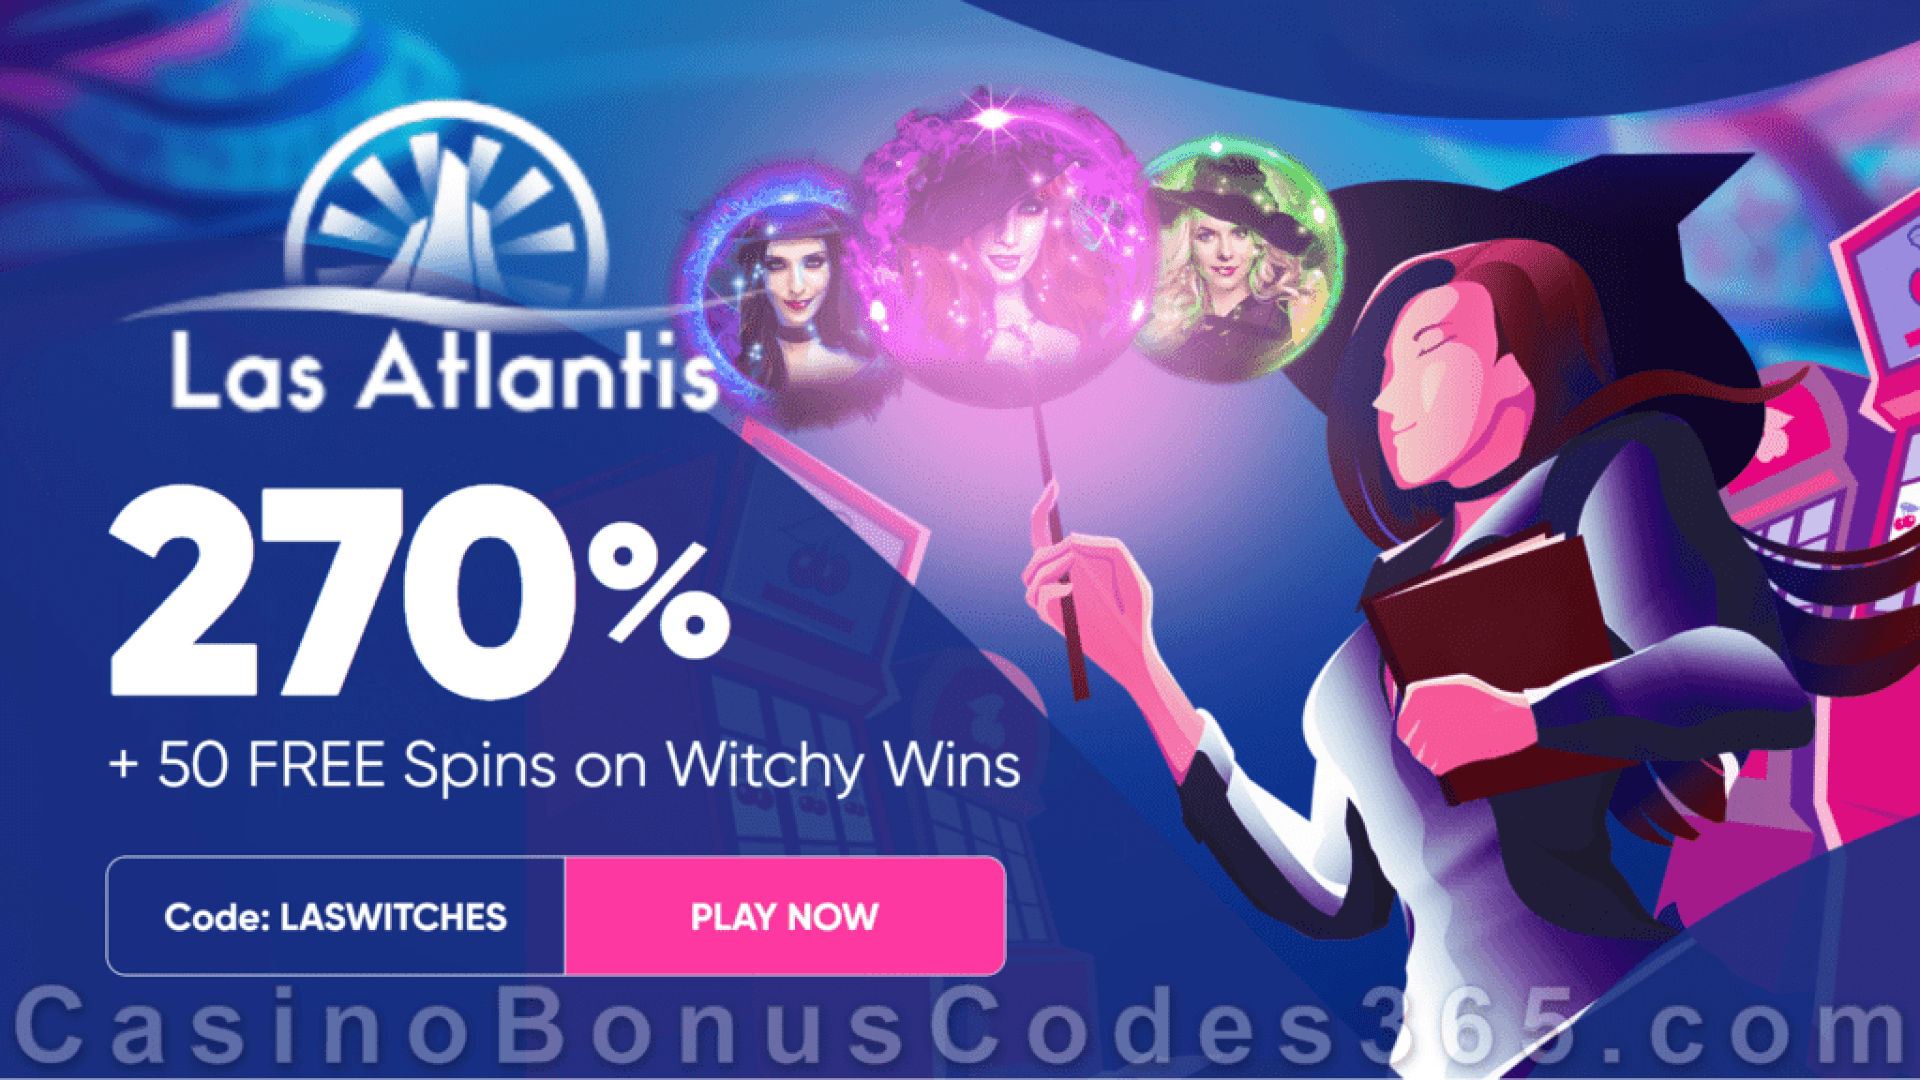 Las Atlantis Casino 270% Match Slots Bonus plus 50 FREE Spins on RTG Witchy Wins Sign Up Offer